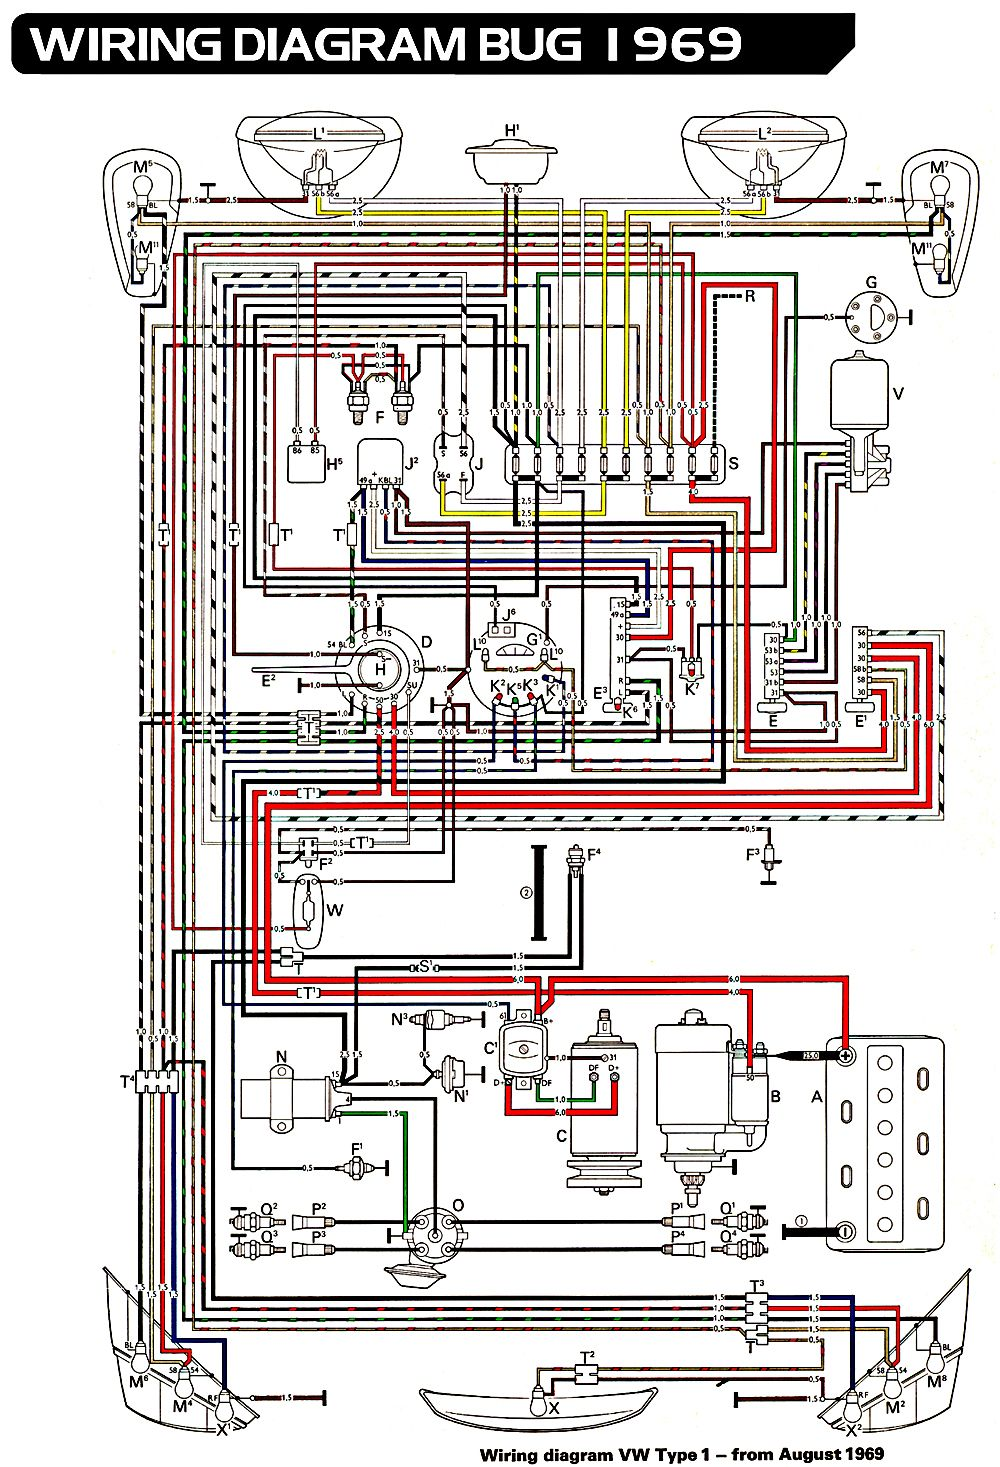 6d75c15875479254f26a32a8499d9044 vw type 1 wiring diagram 1961 vw type 1 wiring diagram \u2022 wiring vw type 3 wiring harness at aneh.co